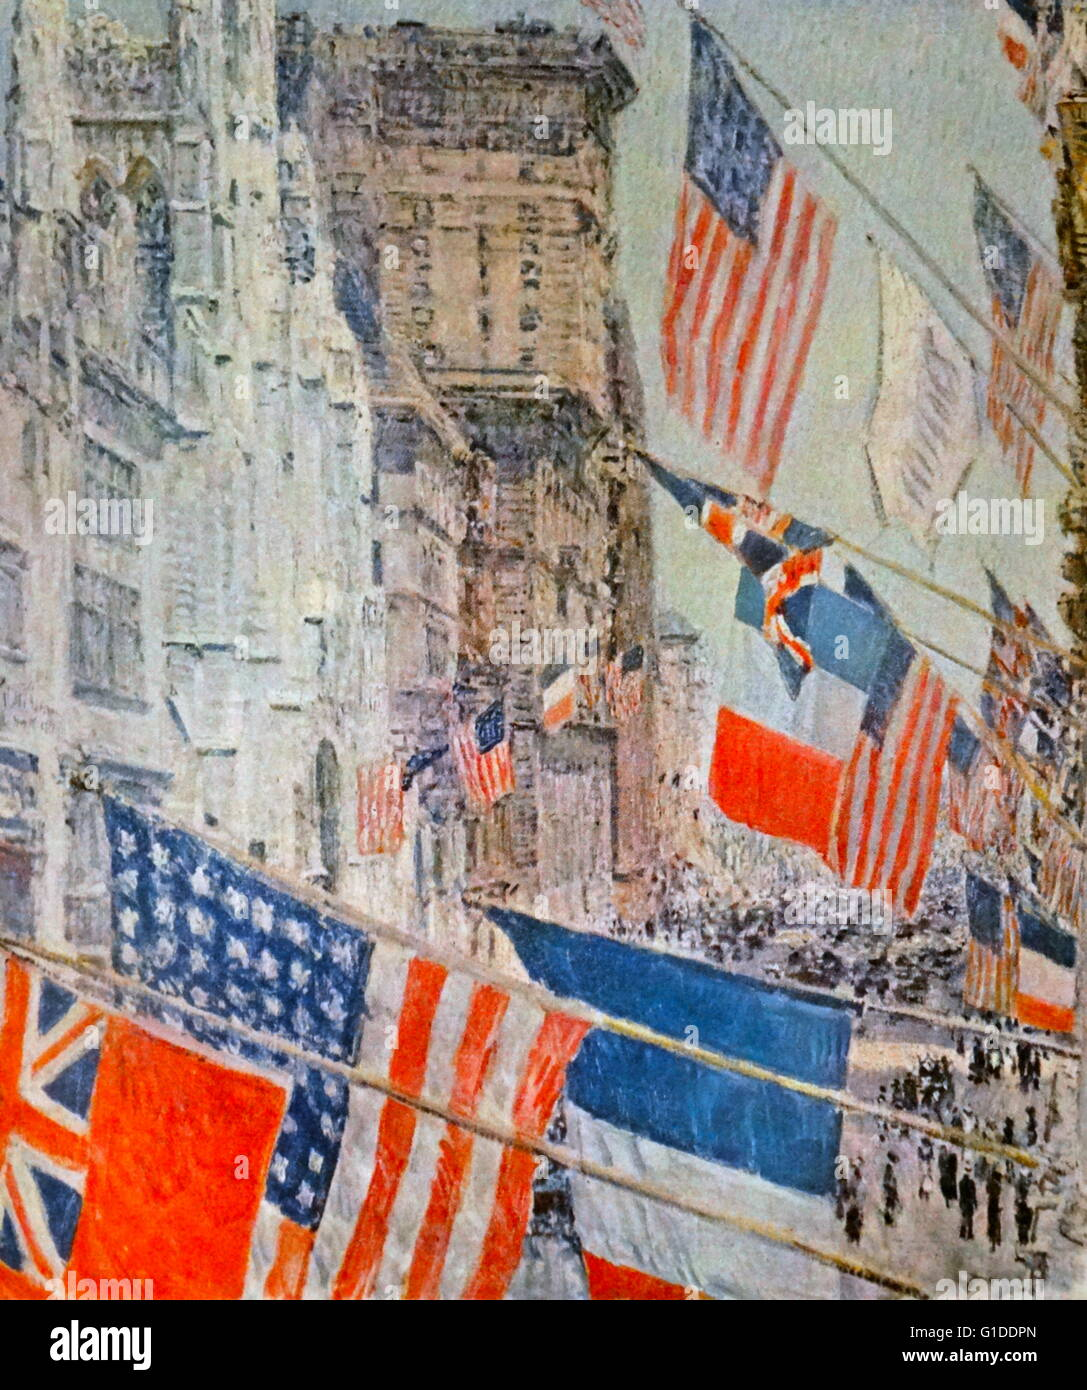 Painting titled 'Allies Day. May. 1917' by Childe Hassam (1859-1935) a prolific American Impressionist painter. - Stock Image